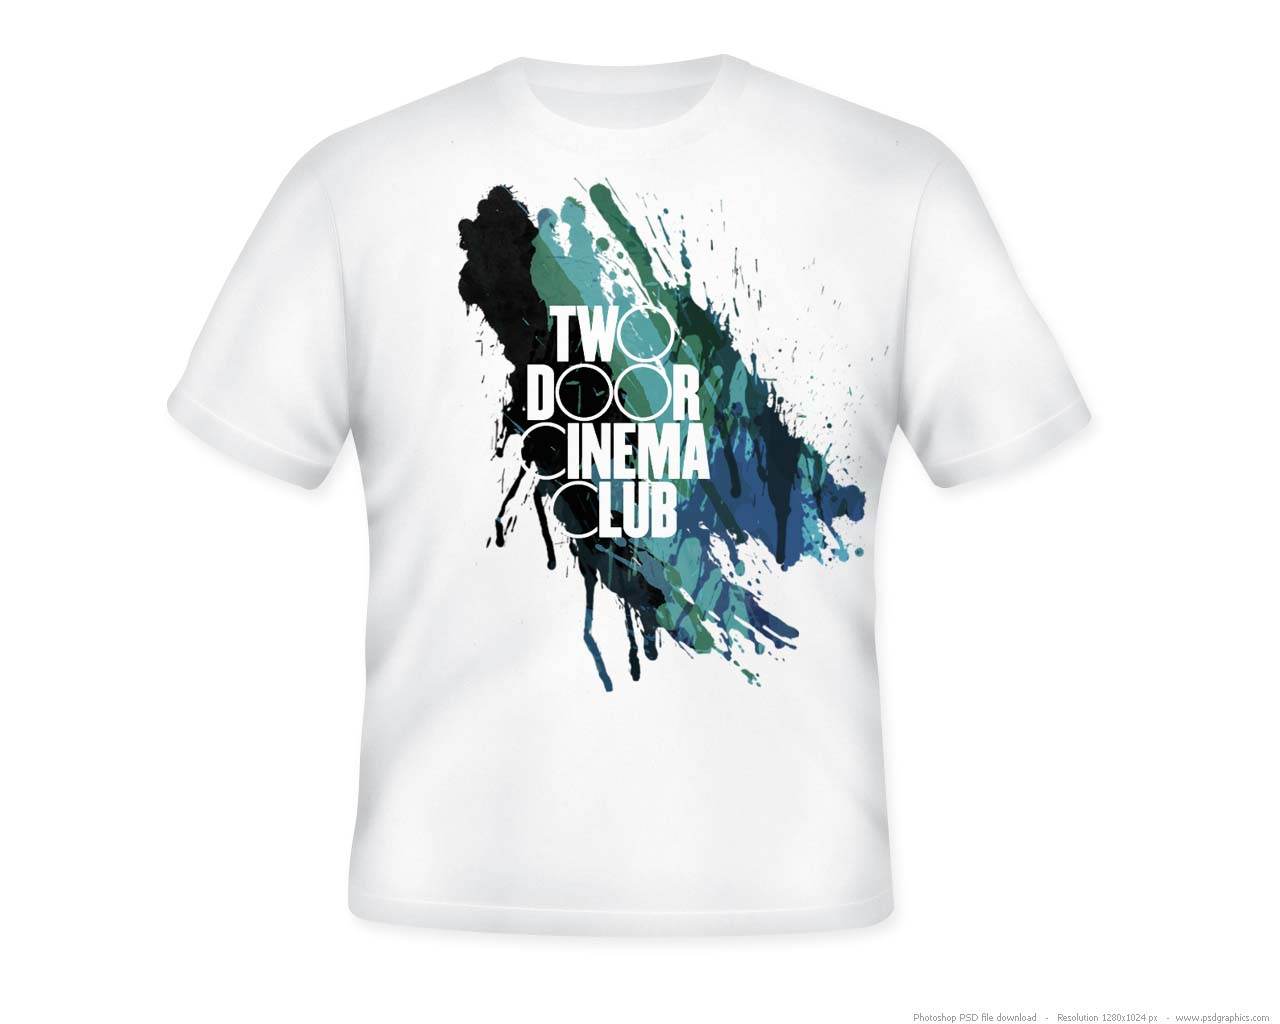 Two door cinema club t shirt design by camelfox01 on for How to design and sell t shirts